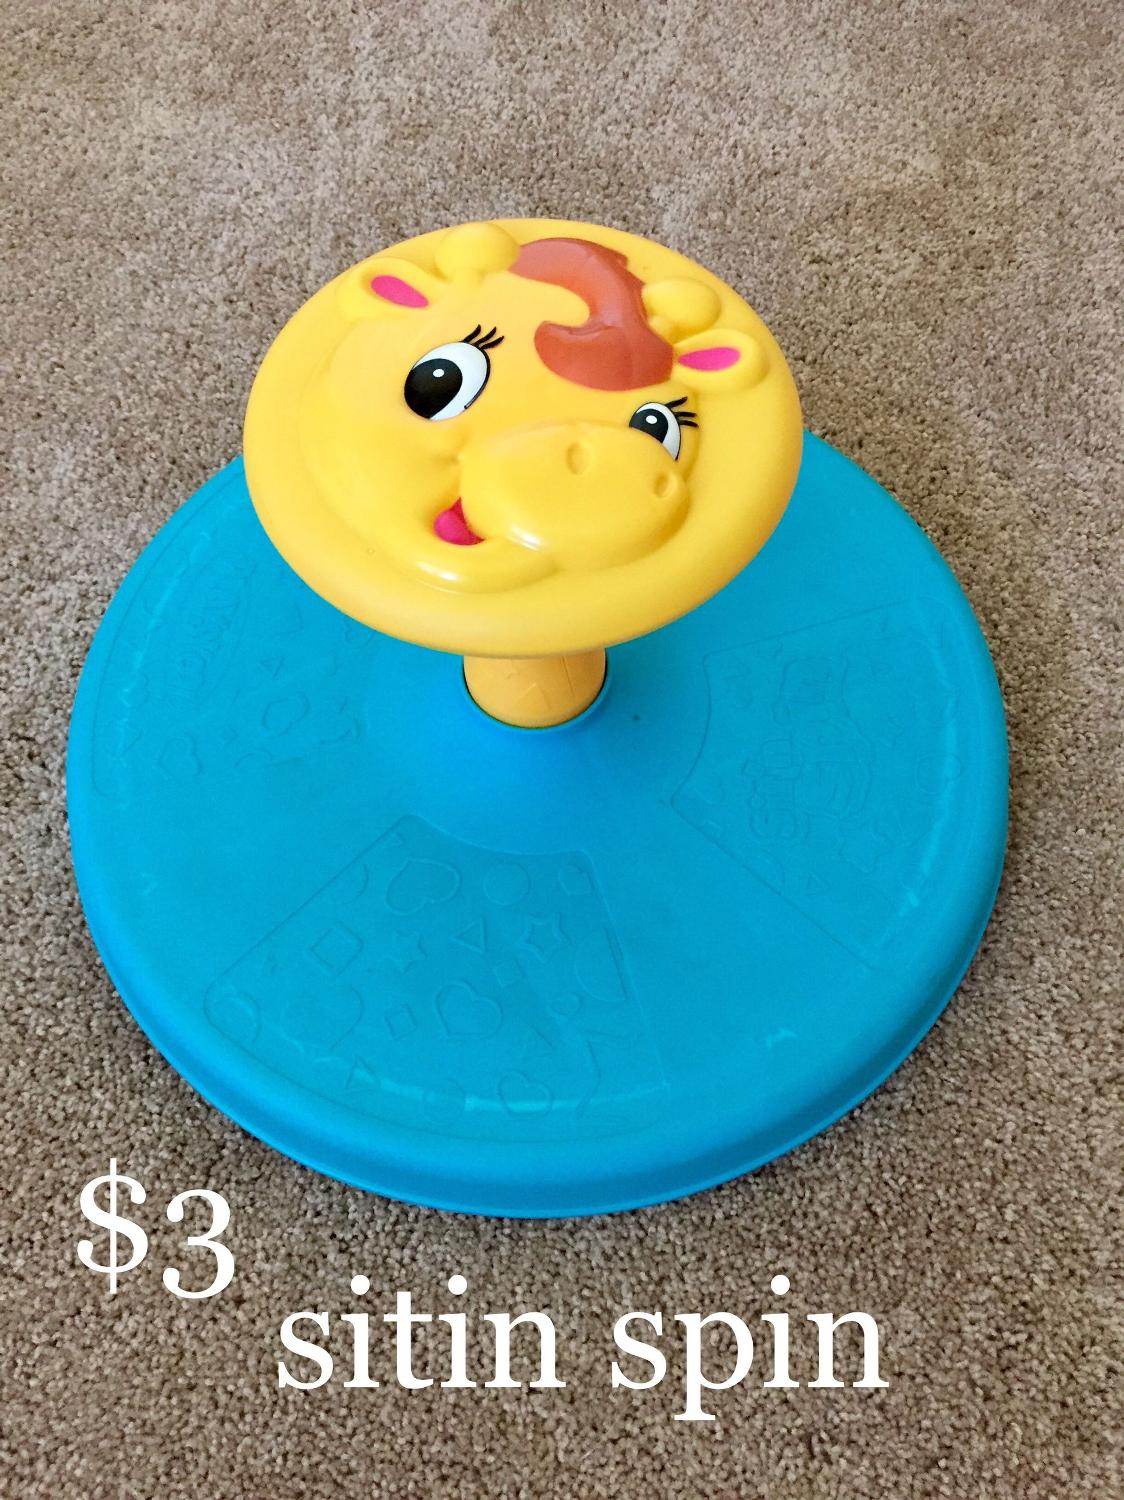 Best Playskool Giraffalaff Sit N Spin For Sale In